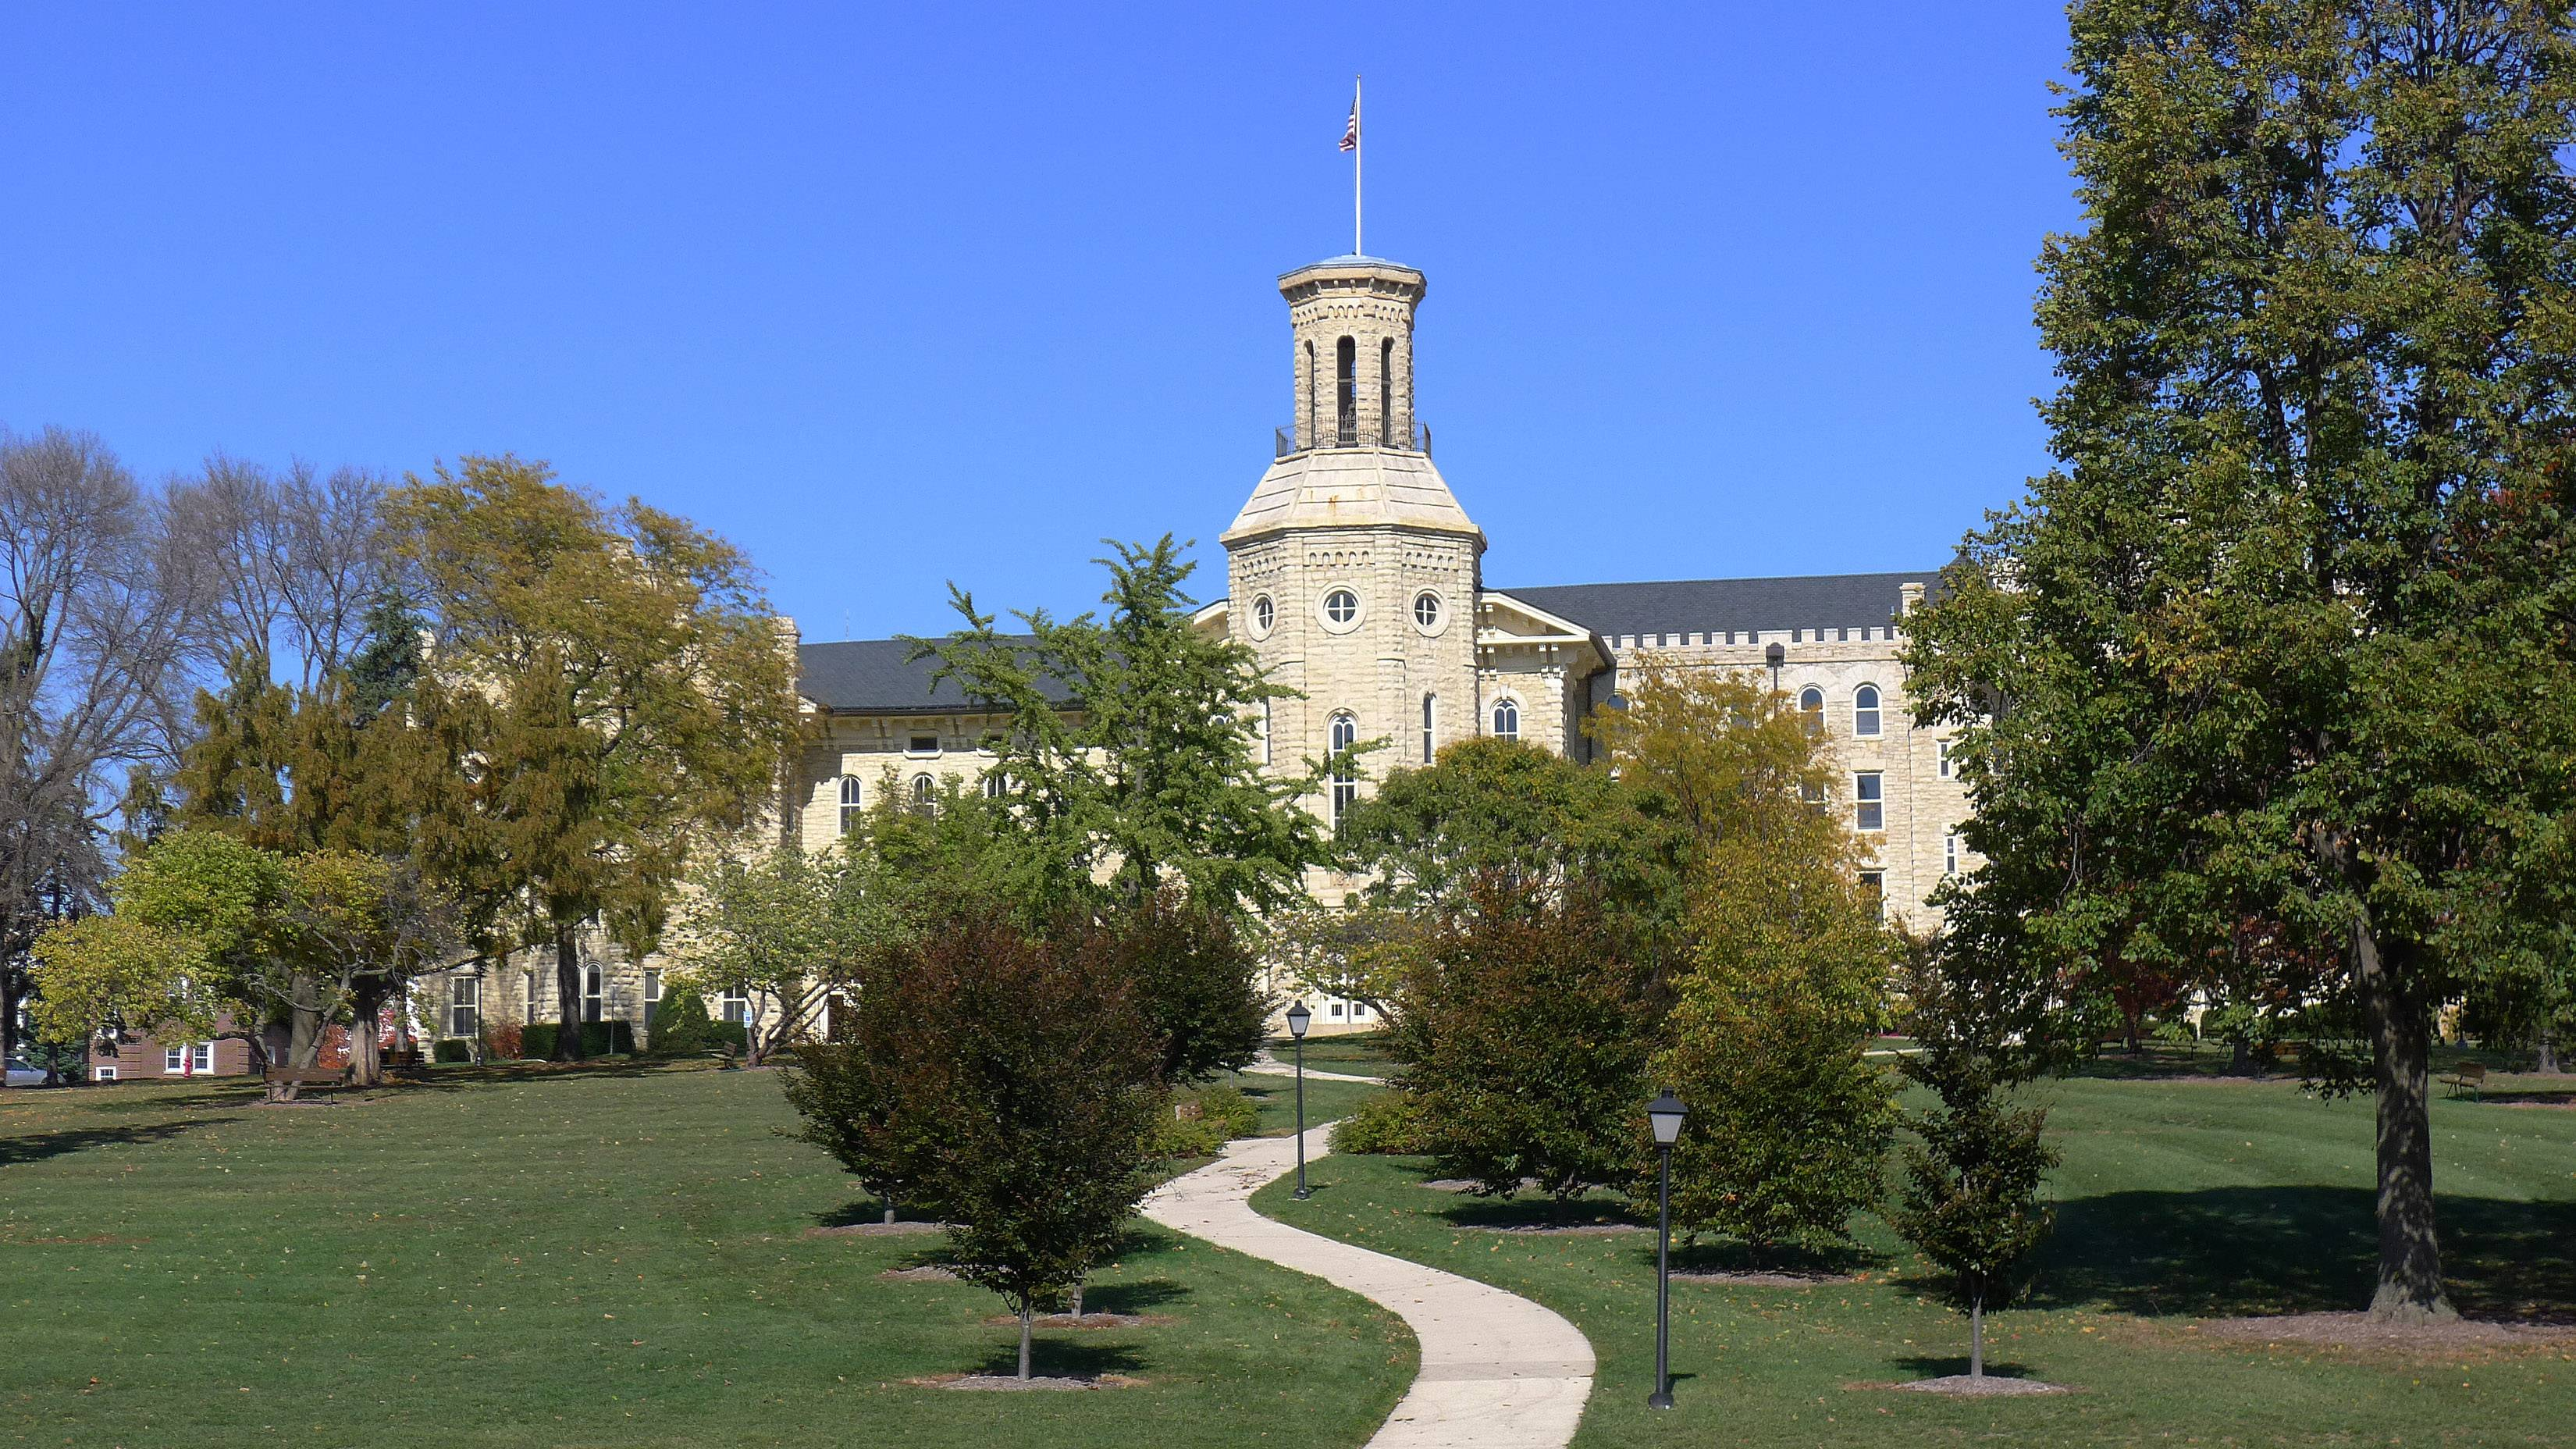 Wheaton College for the moment will be allowed to write a letter to the Department of Health and Human Services stating it objects to providing emergency contraception to its employees.